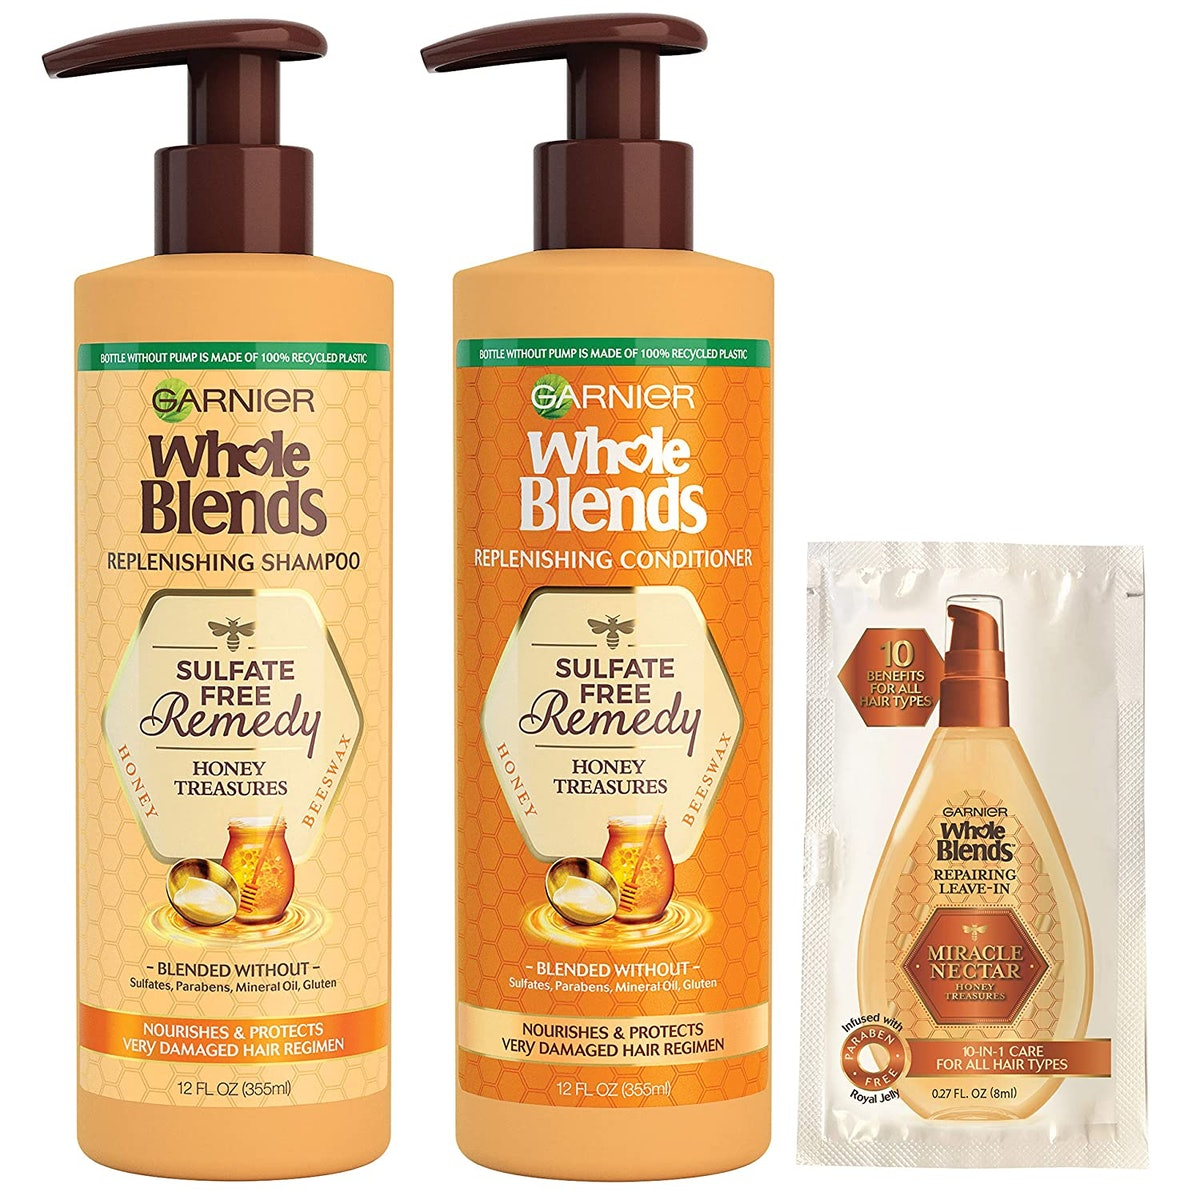 Garnier Haircare Whole Blends Sulfate Free Best Drugstore Sulfate-Free Shampoos - Remedy Honey Treasures Replenishing Shampoo & Conditioner